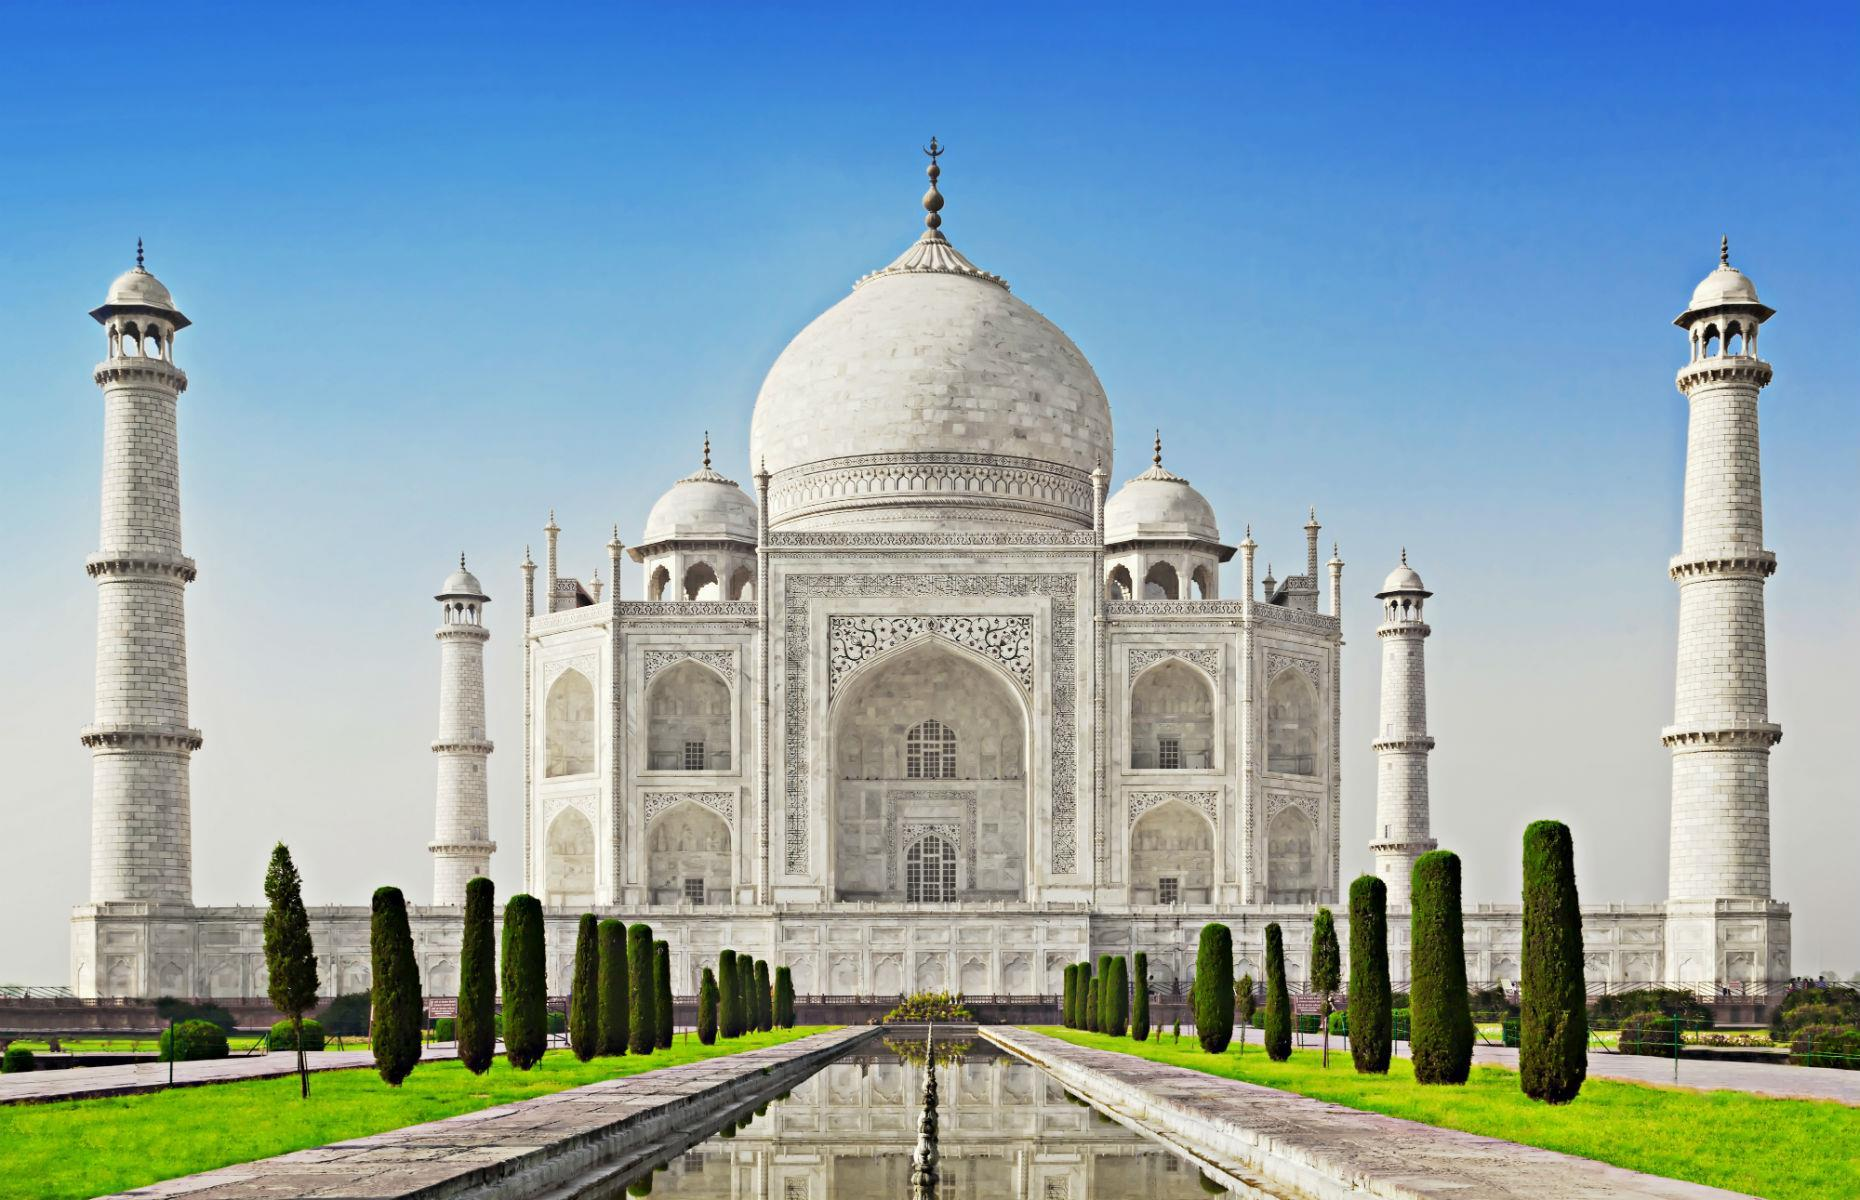 Slide 14 of 45: One of the most beautiful buildings on the planet, with the most romantic history, the Taj Mahal was built by the Mughal emperor Shah Jahān to immortalize his beloved wife Mumtaz Mahal after she died during childbirth.